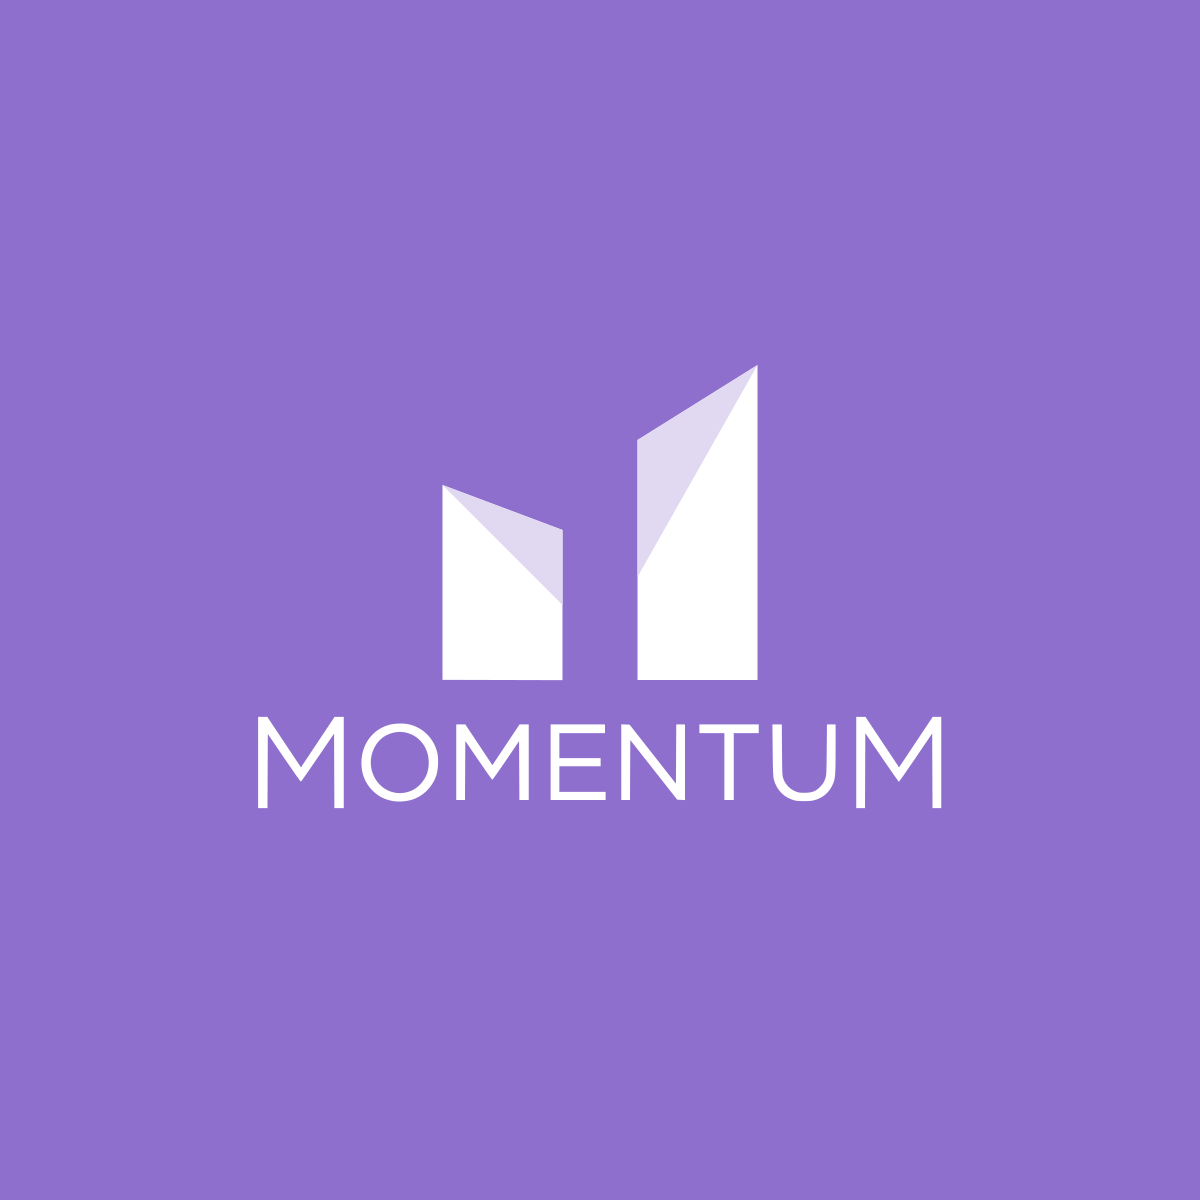 Momentum Movement.